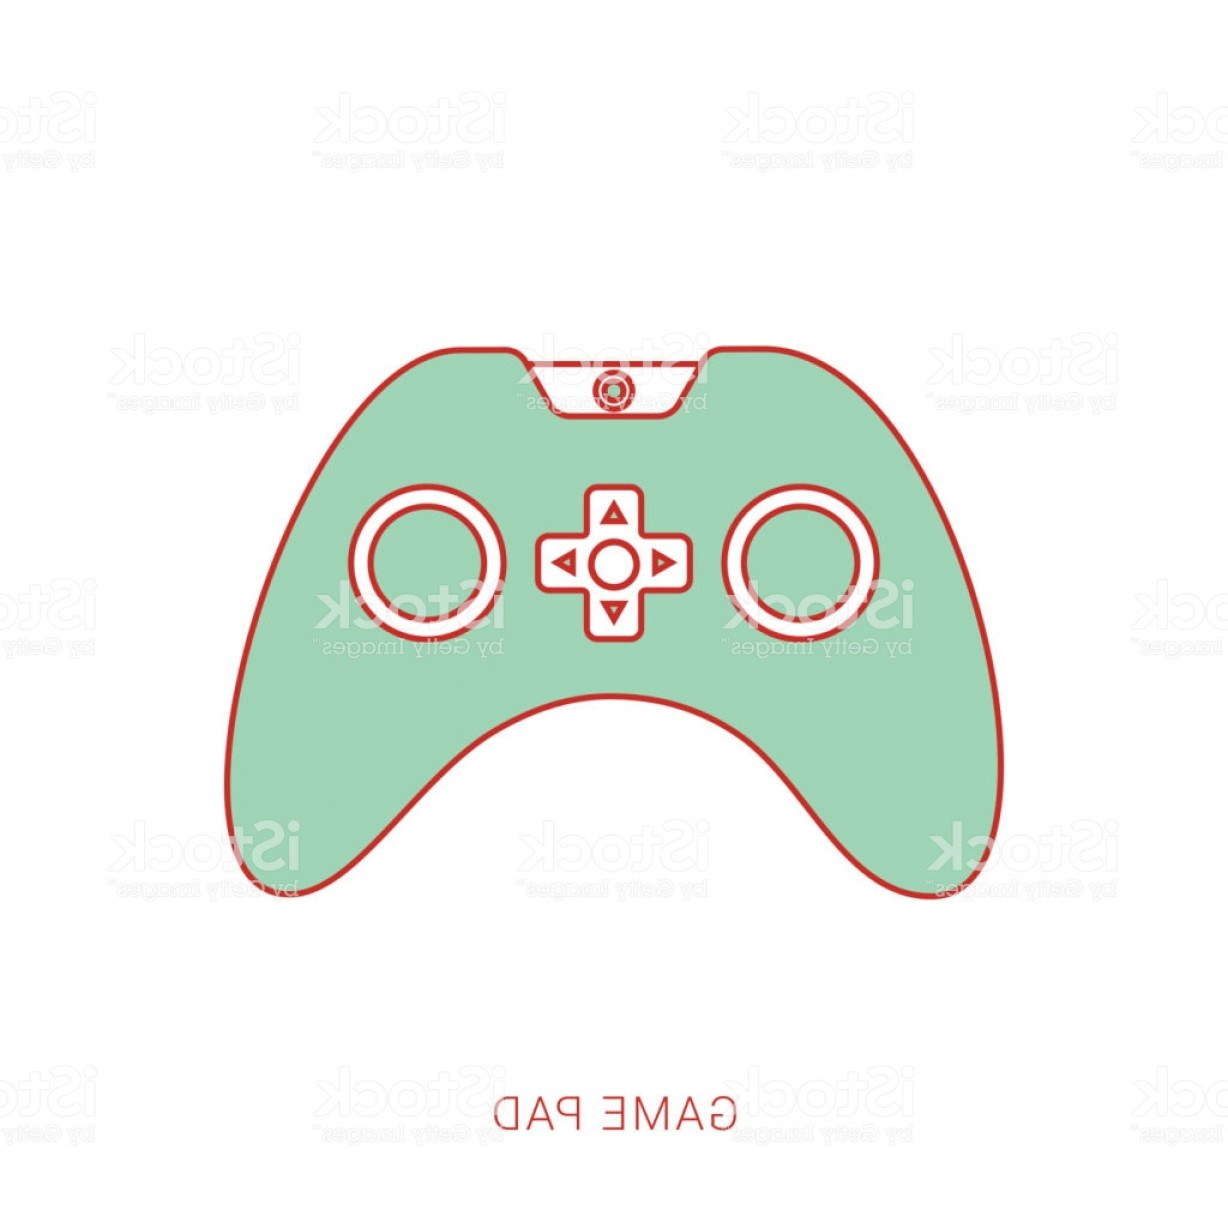 Xbox Game Controller Vector: Joystick Controller Game Pad Flat Style Gm